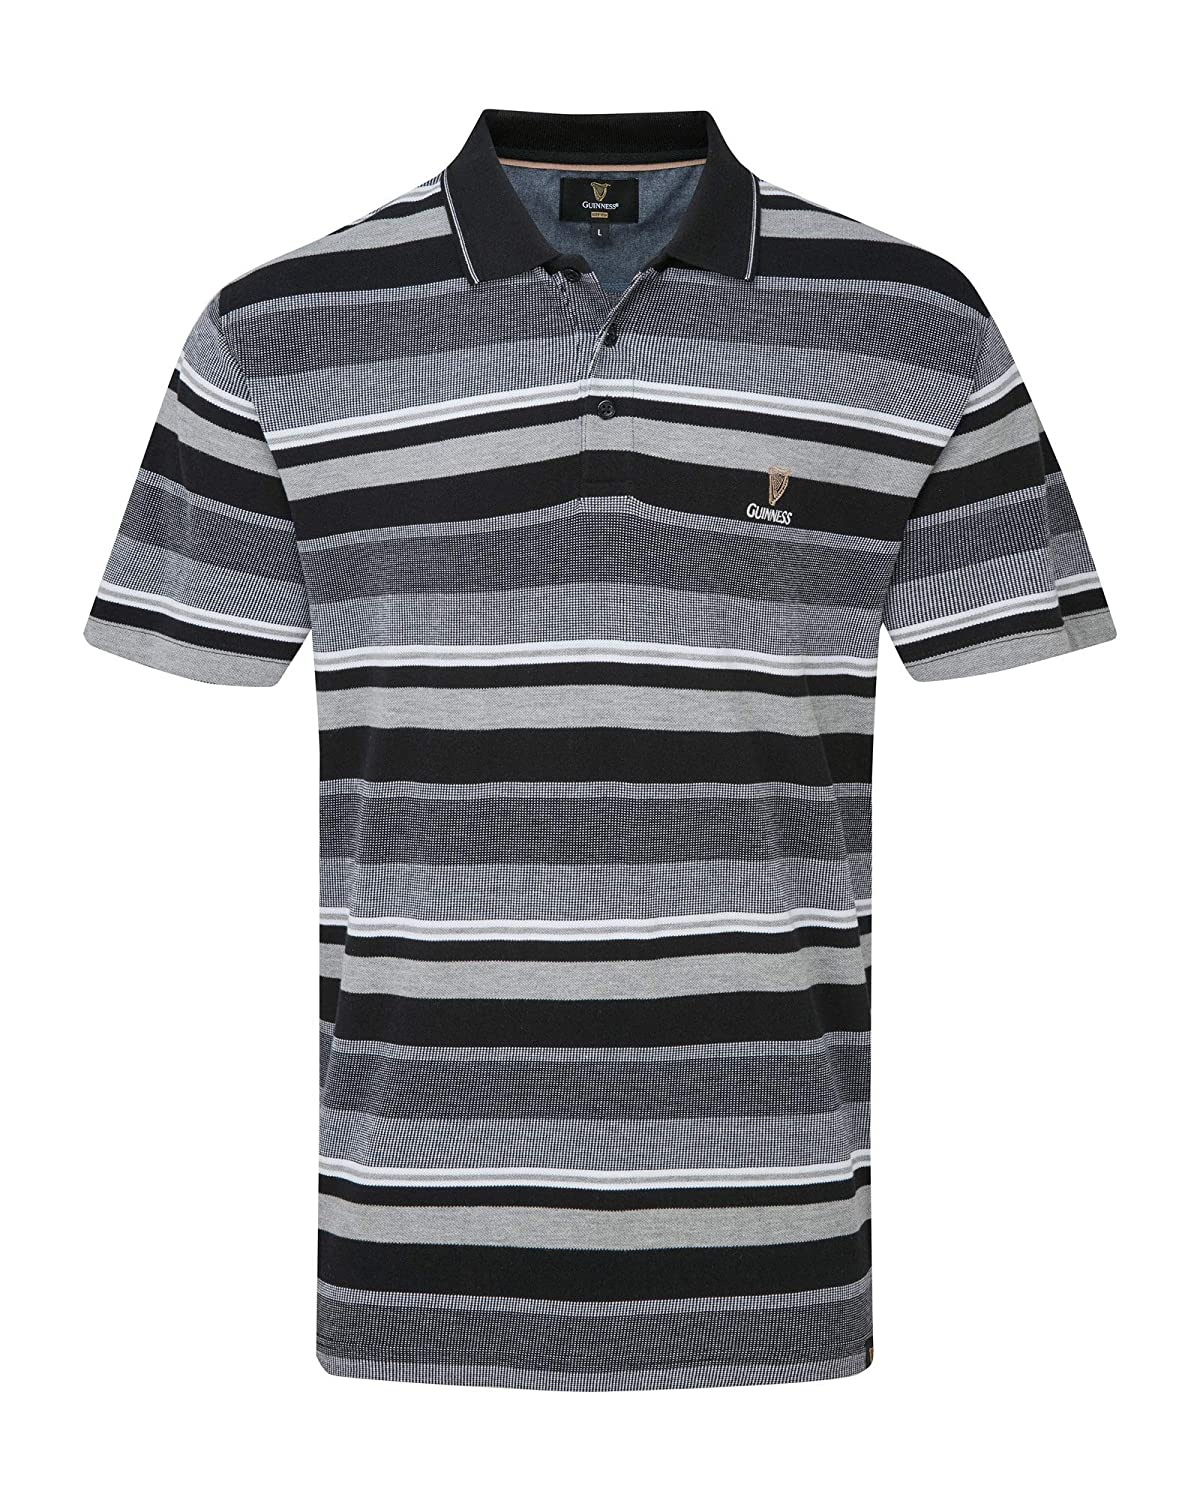 a2559737897 Cotton Traders Mens Short Sleeve Casual Striped Cotton Guinness Embroidered  Polo Shirt: Amazon.co.uk: Clothing